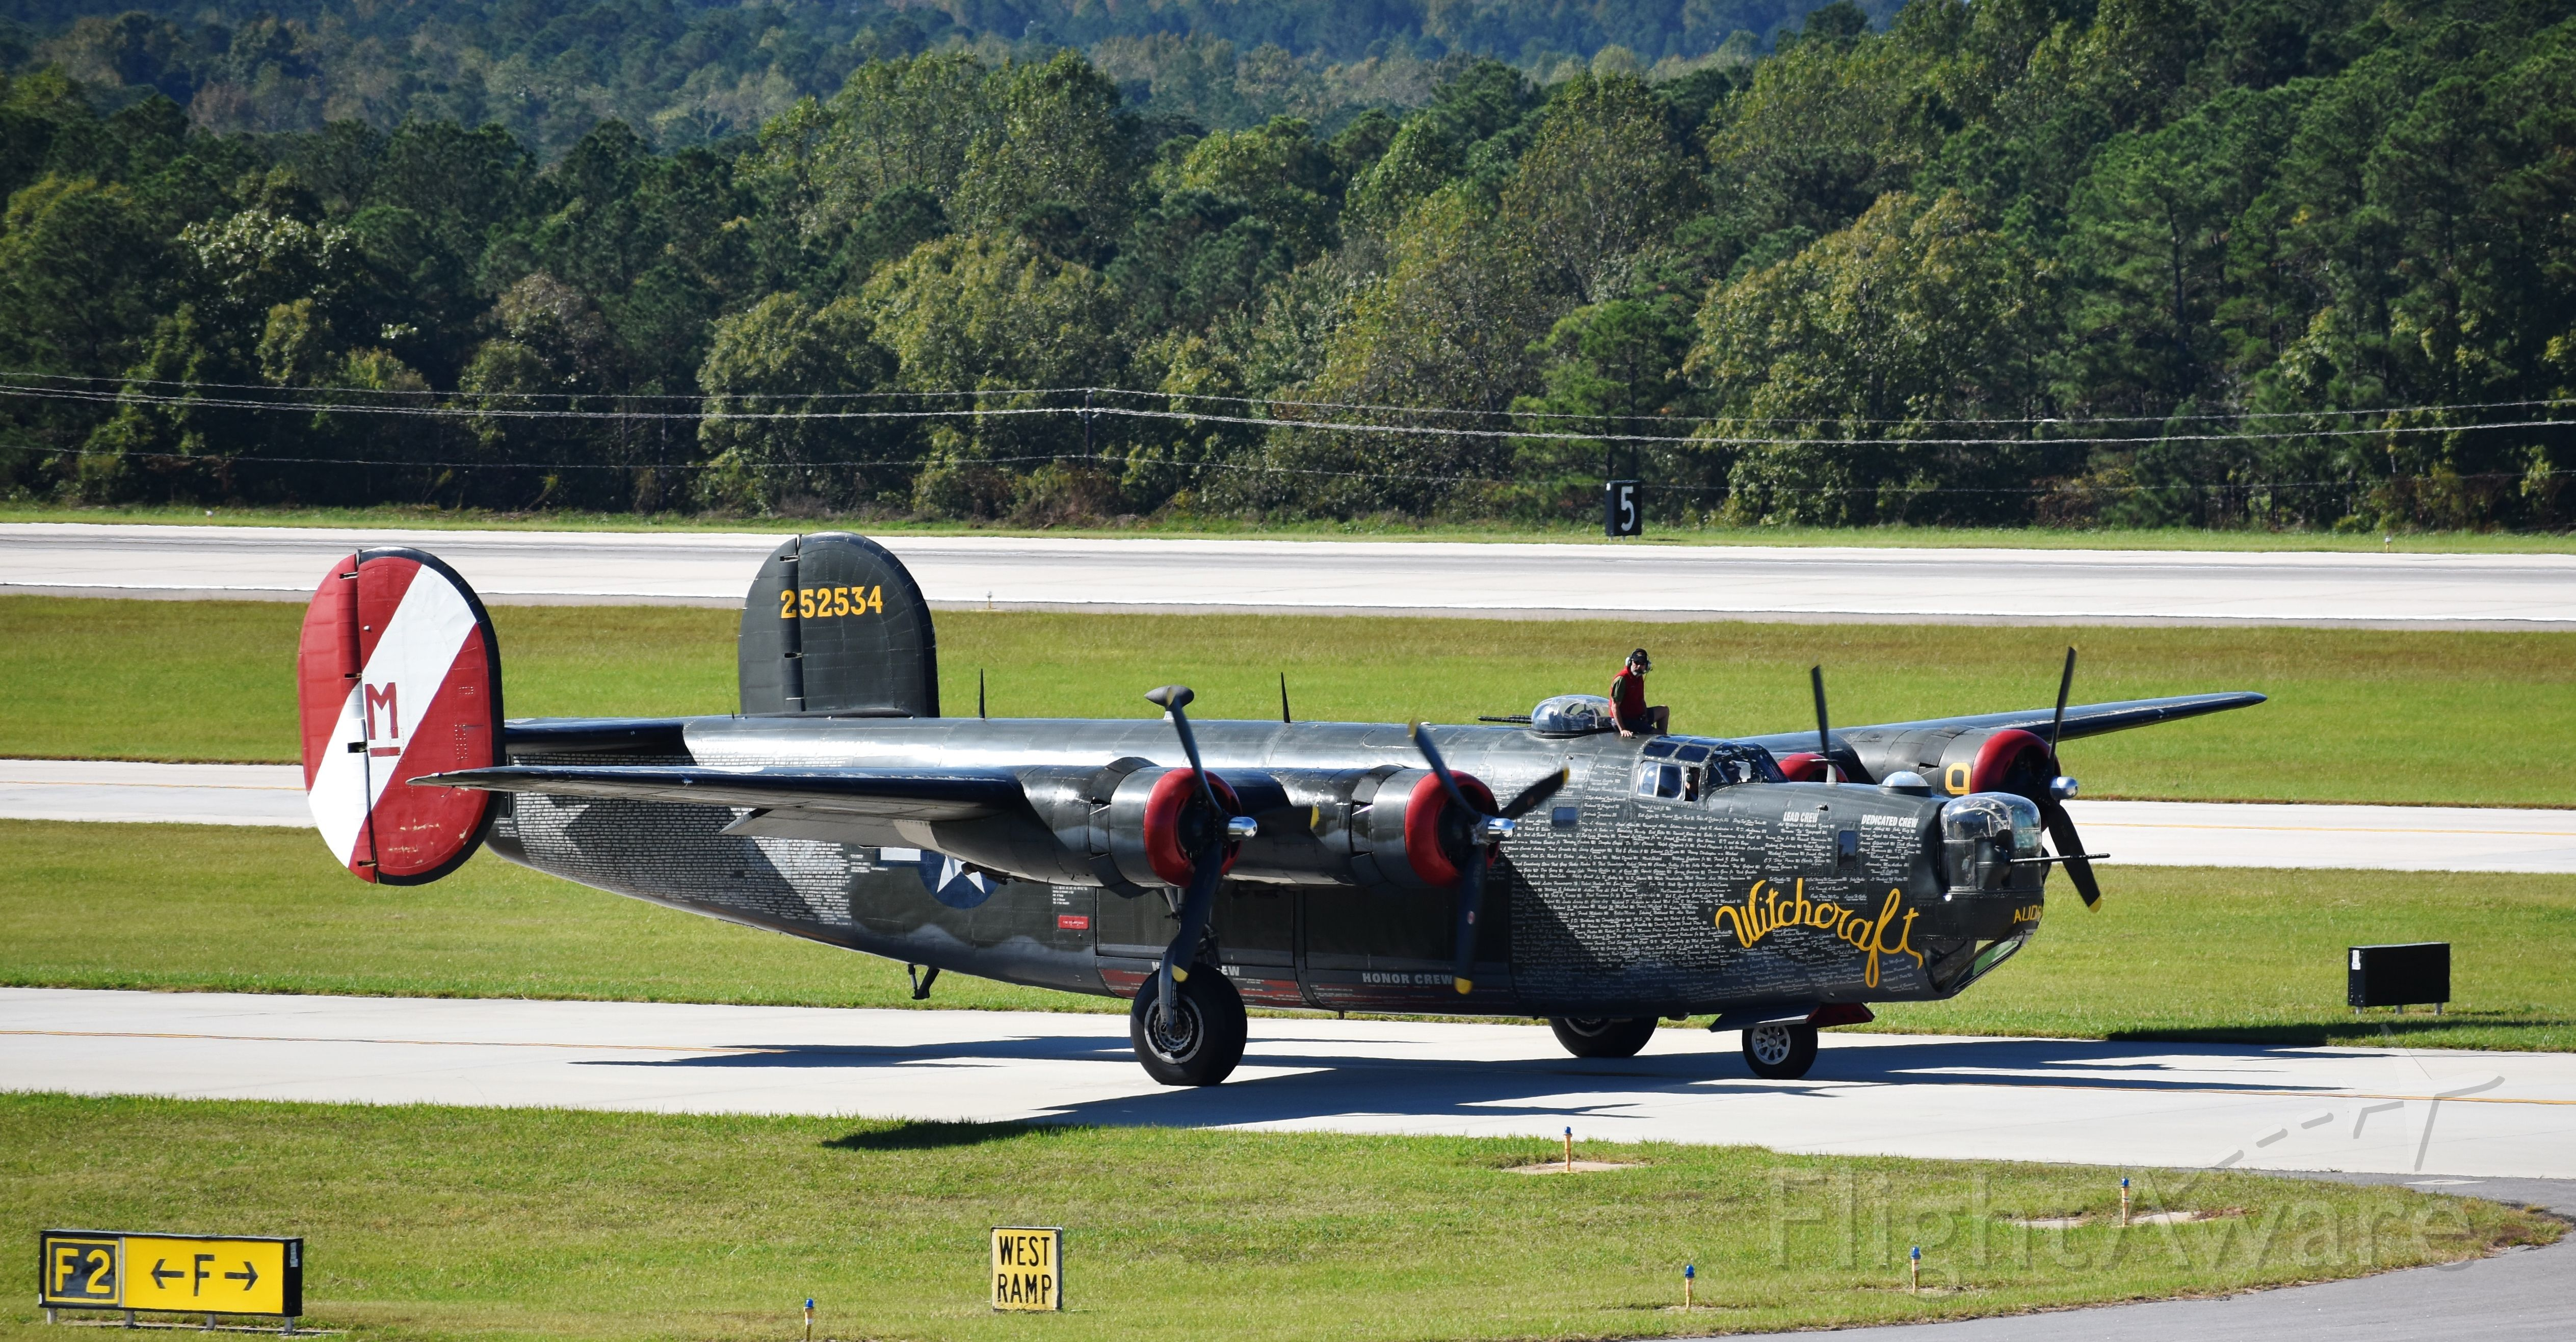 Consolidated B-24 Liberator (N224J) - Witchcraft makes her entrance to RDU on 10/19/17 for a Collings Foundation fly-in.